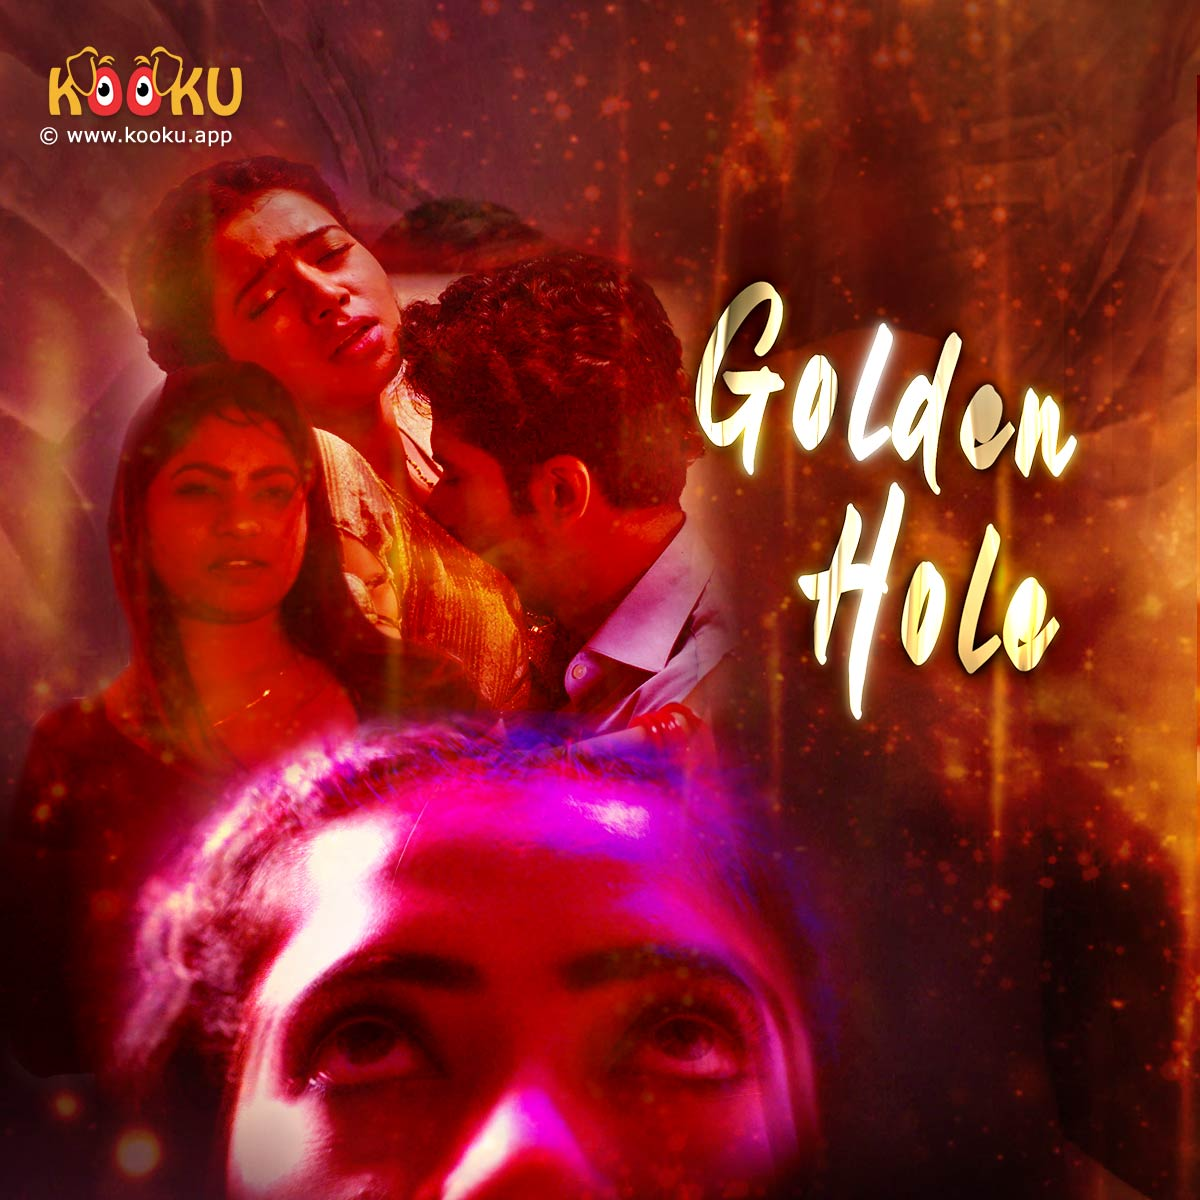 18+ Golden Hole 2020 S01 Hindi Kooku App Web Series Official Trailer 720p HDRip 25MB x264 AAC